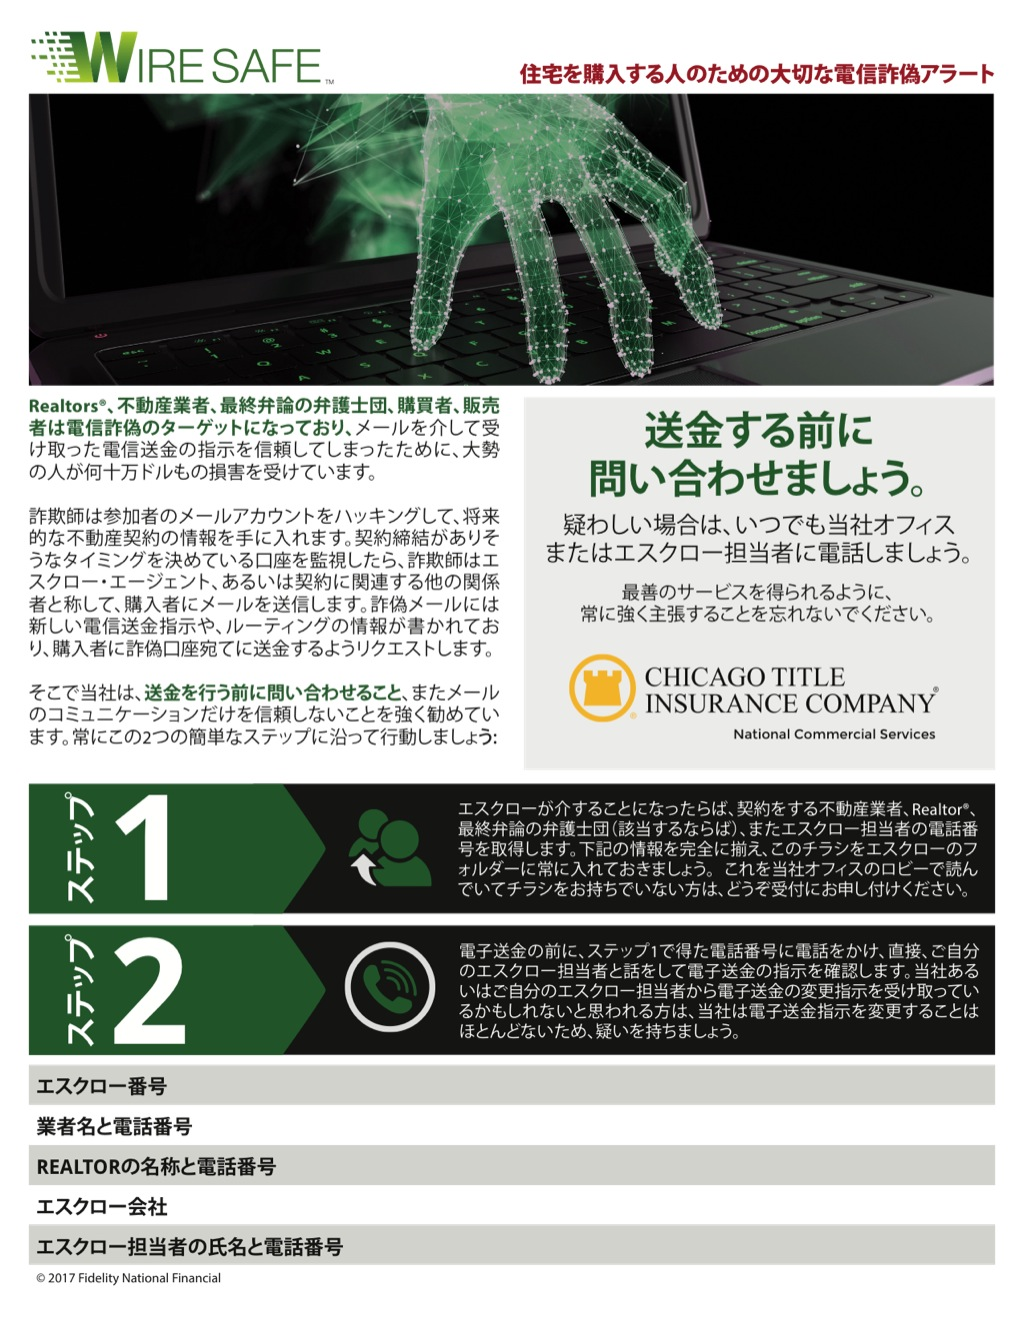 Corefact Wire Safe Buyer Flyer - Japanese - CTIC NCS